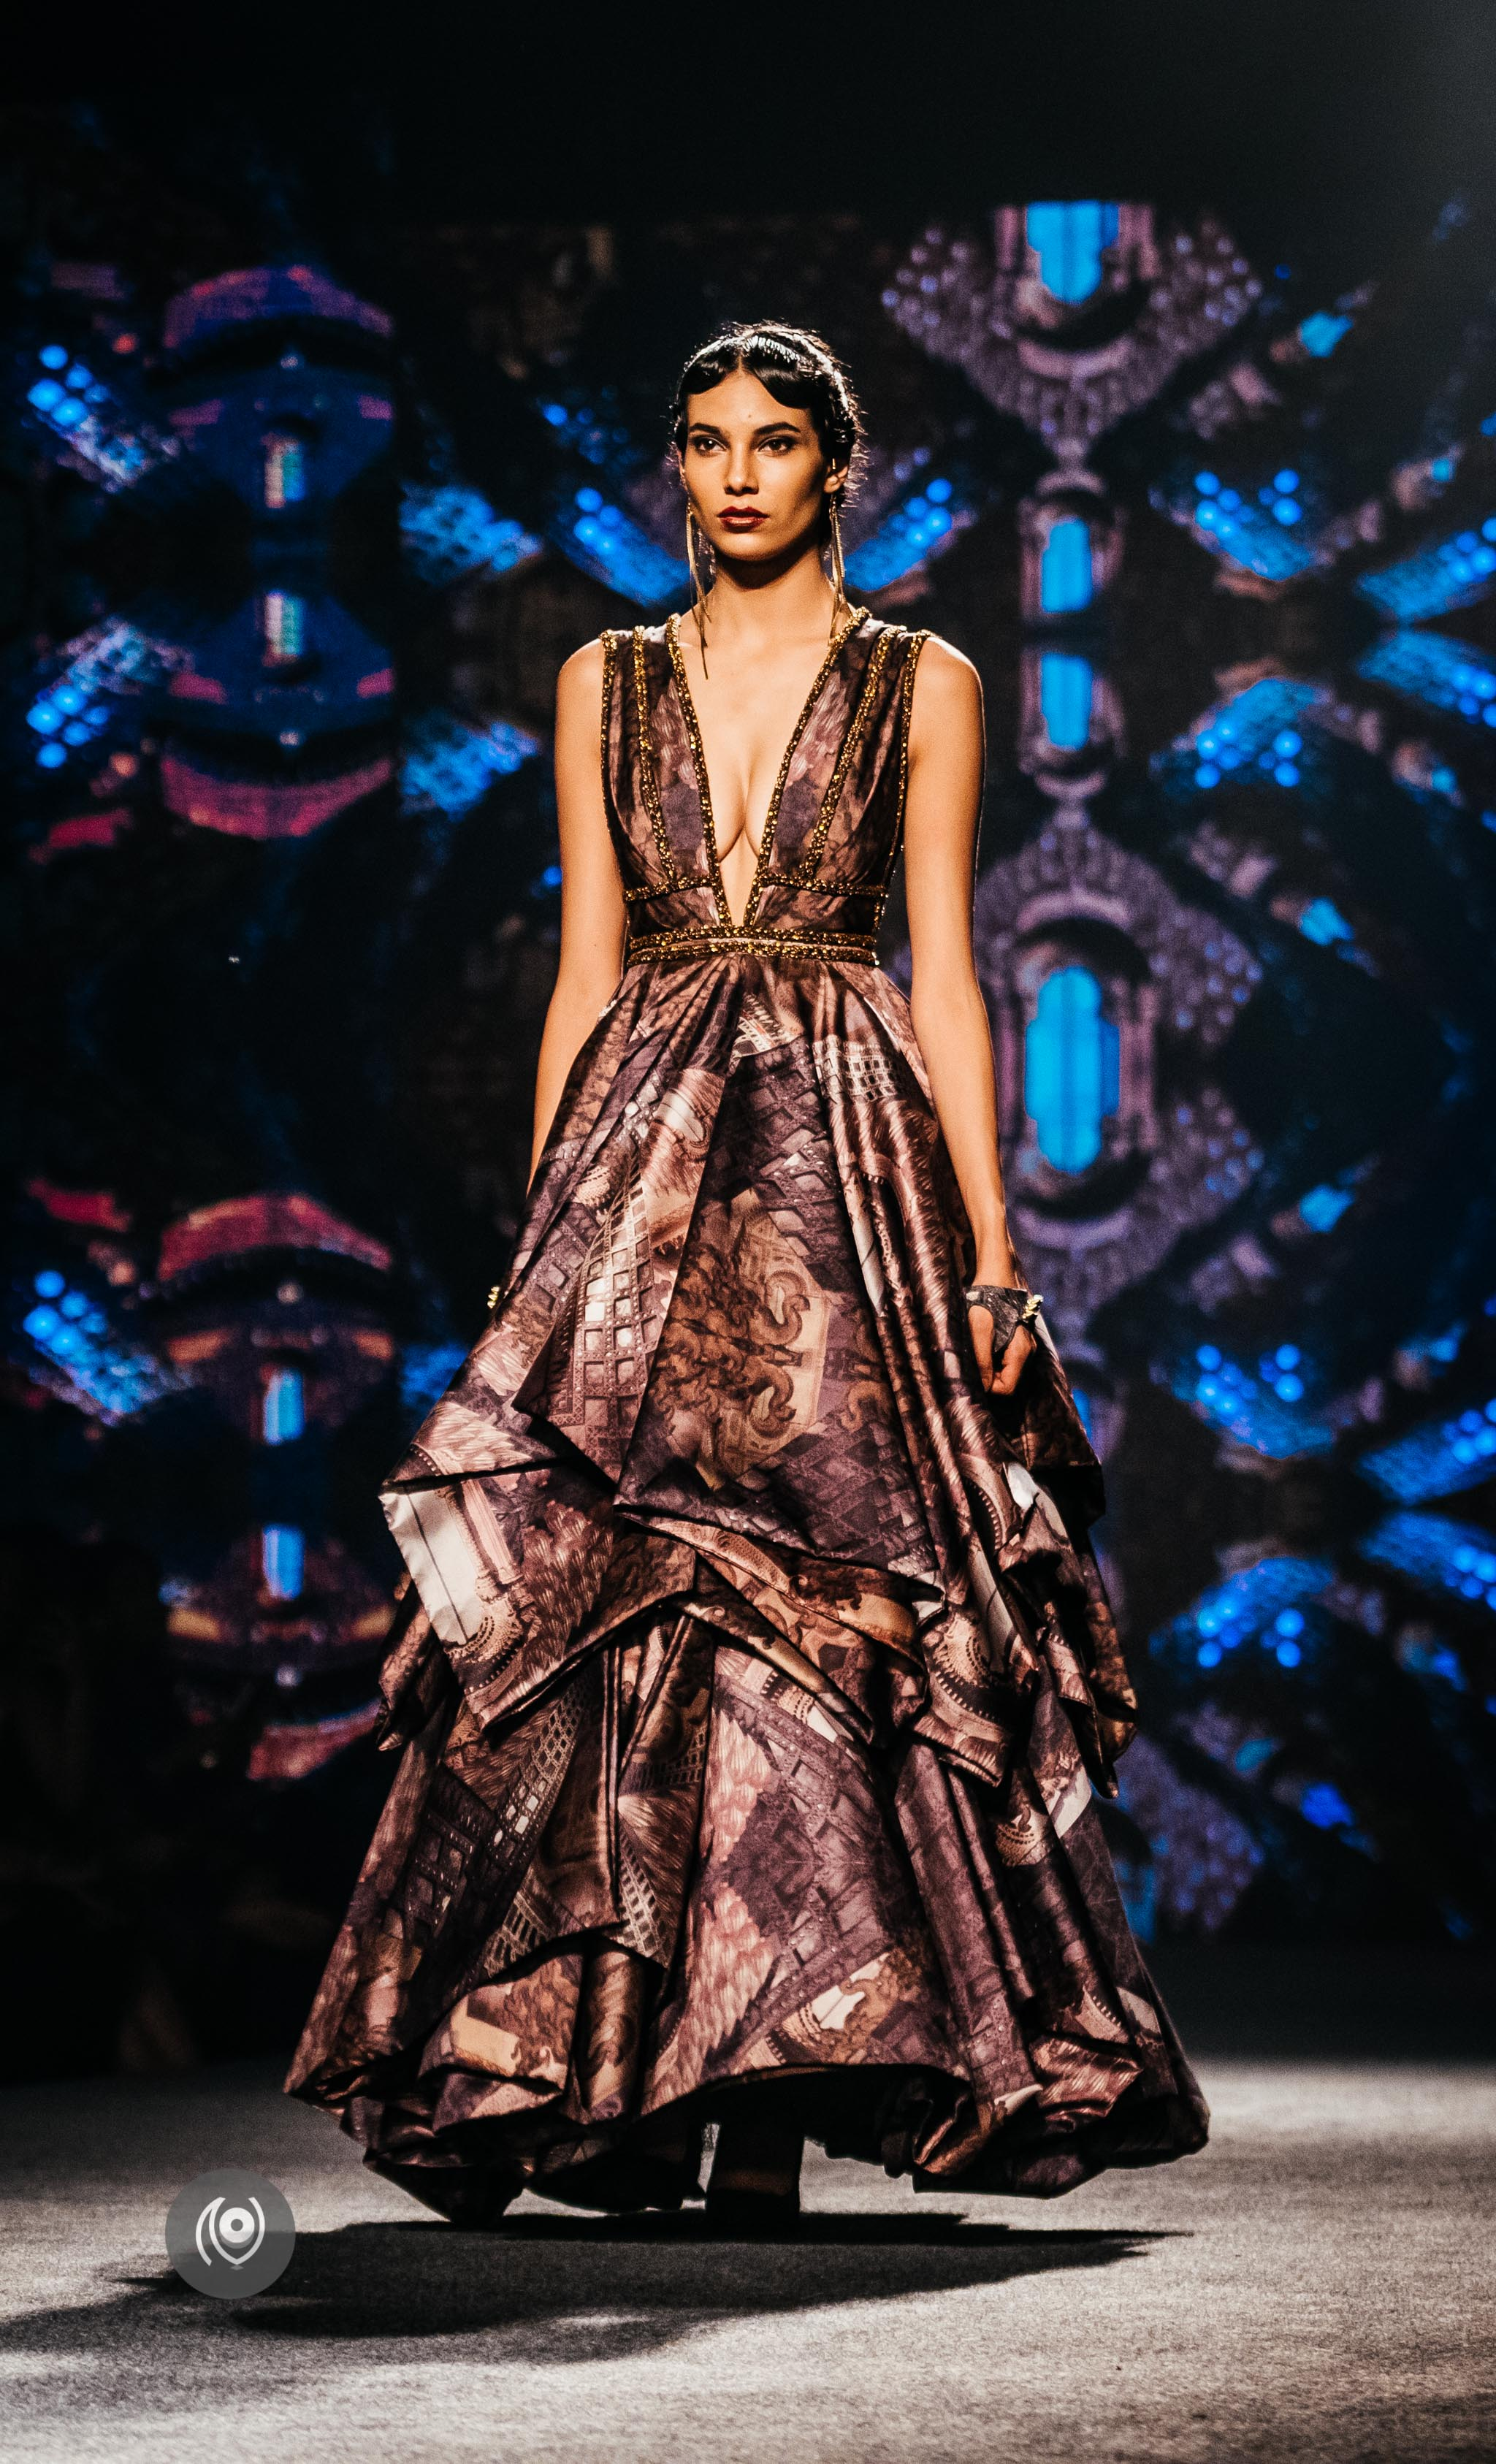 #SwarovskiCrystals Shantanu and Nikhil,, BMW India Bridal Fashion Week, #BMWIBFW, Naina.co Luxury & Lifestyle, Photographer Storyteller, Blogger.